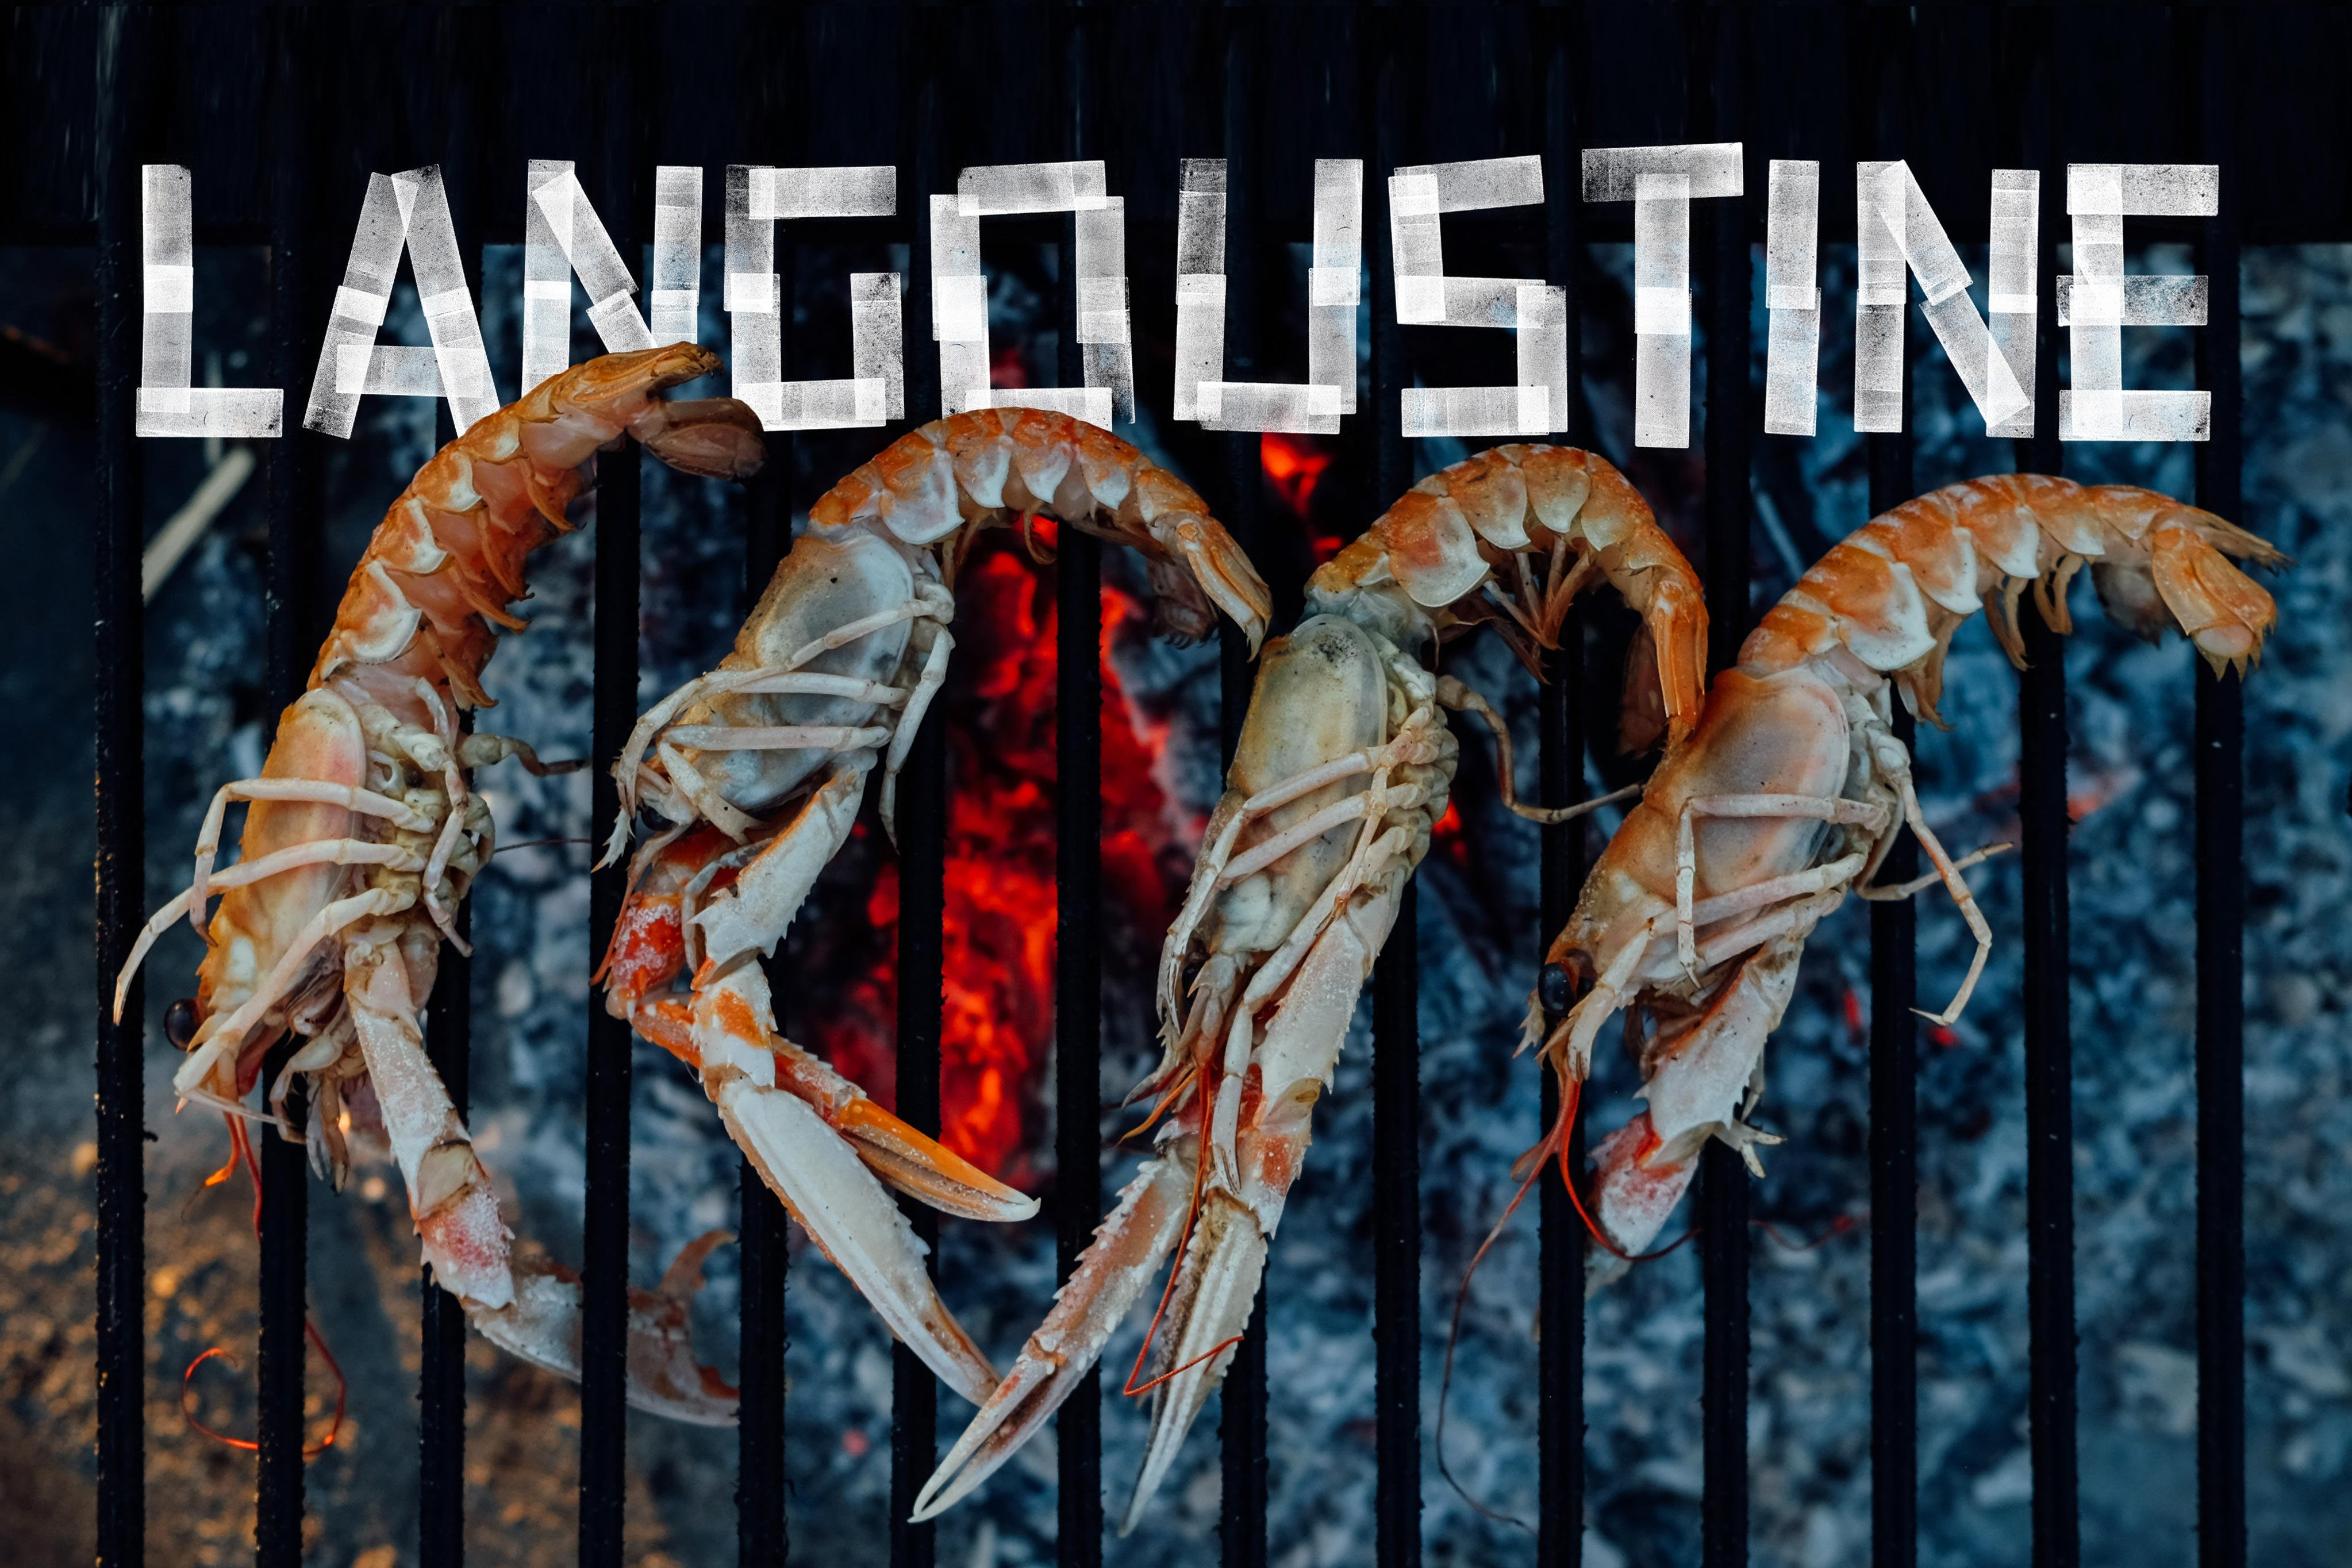 The Two Anchors Seafood Fish Brand Graphic Design Photography Shellfish Logo Ogmore-by-Sea Wales Langoustine Jonathan White Phill Lewis